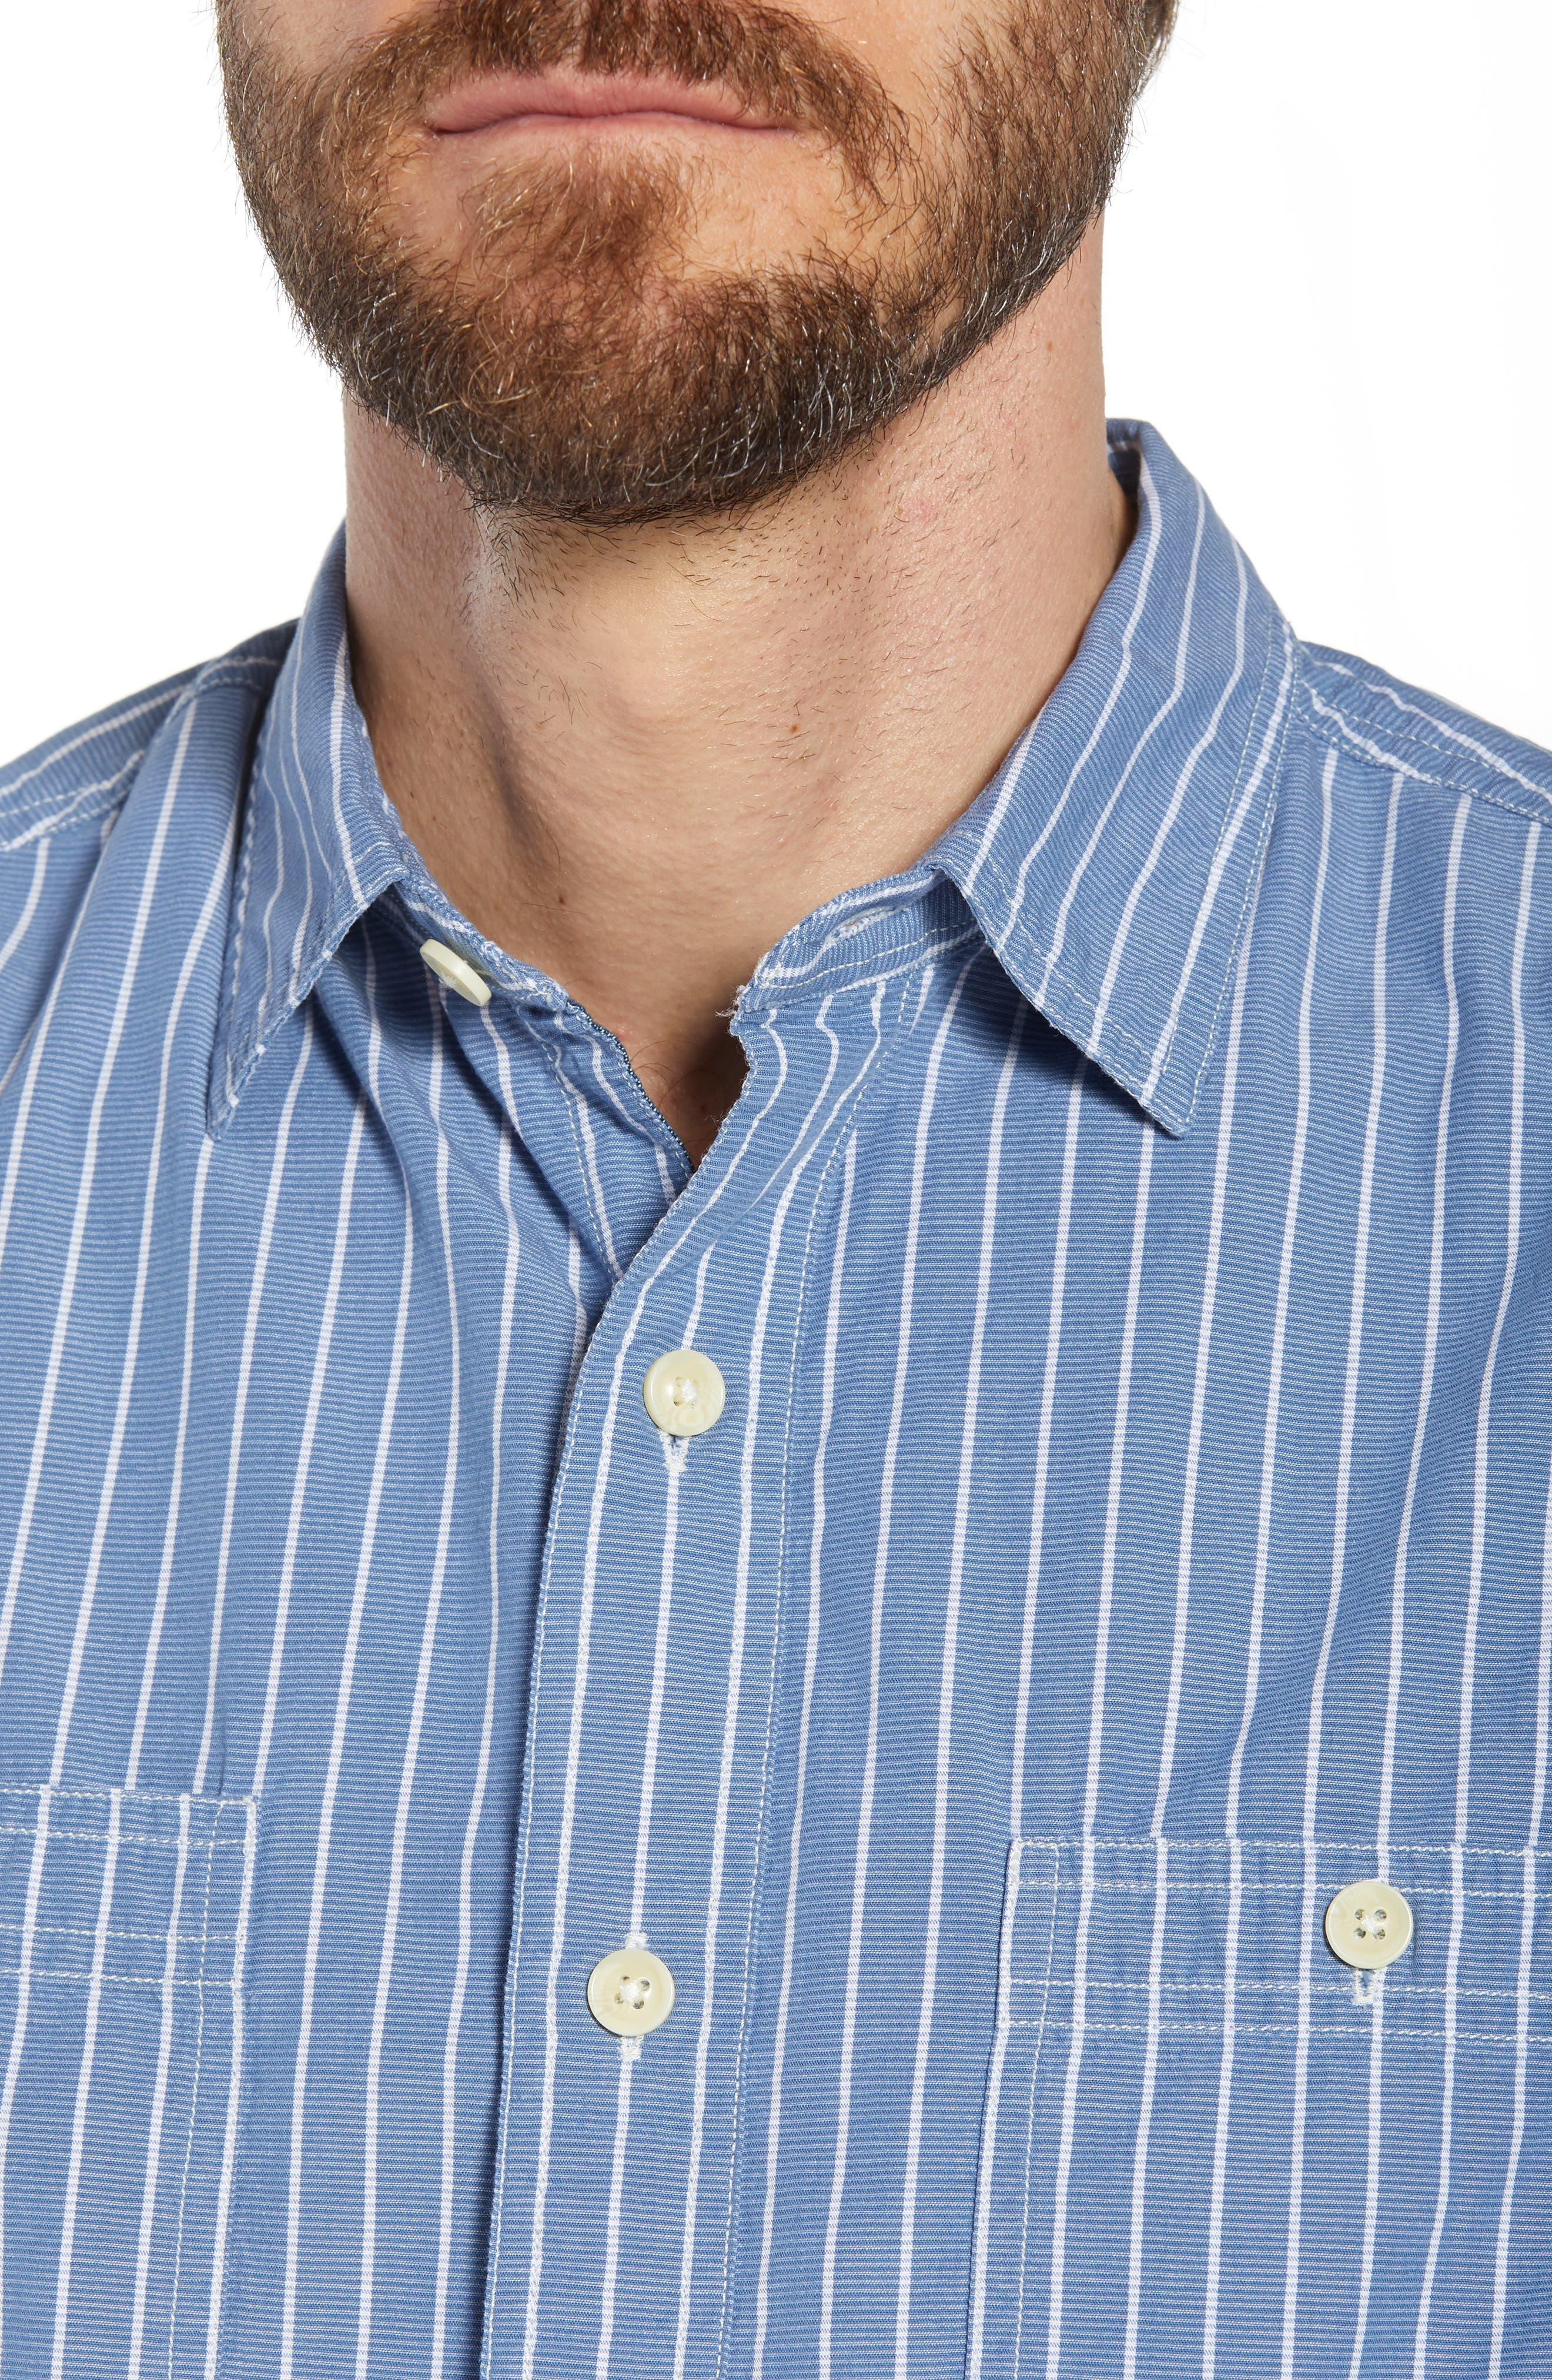 Larkin Stripe Sport Shirt,                             Alternate thumbnail 4, color,